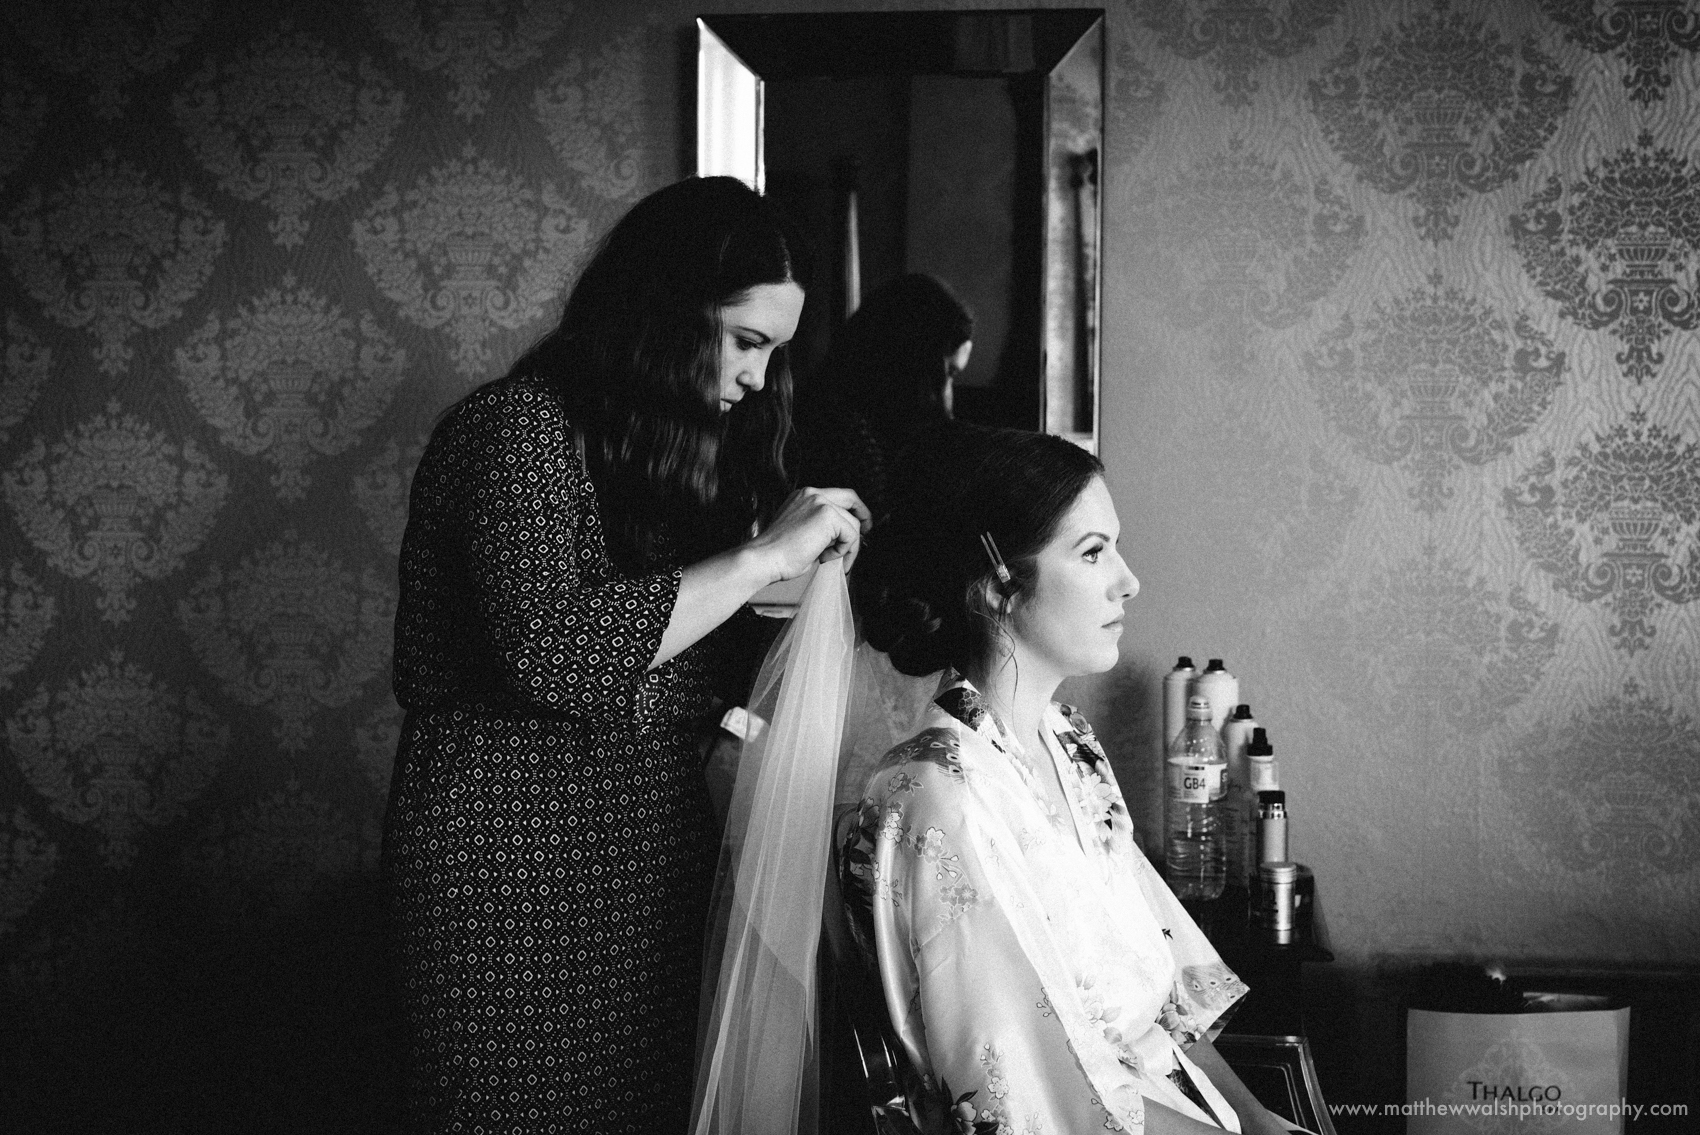 A Documentary style picture of the bride having her veil put on by the hair dresser